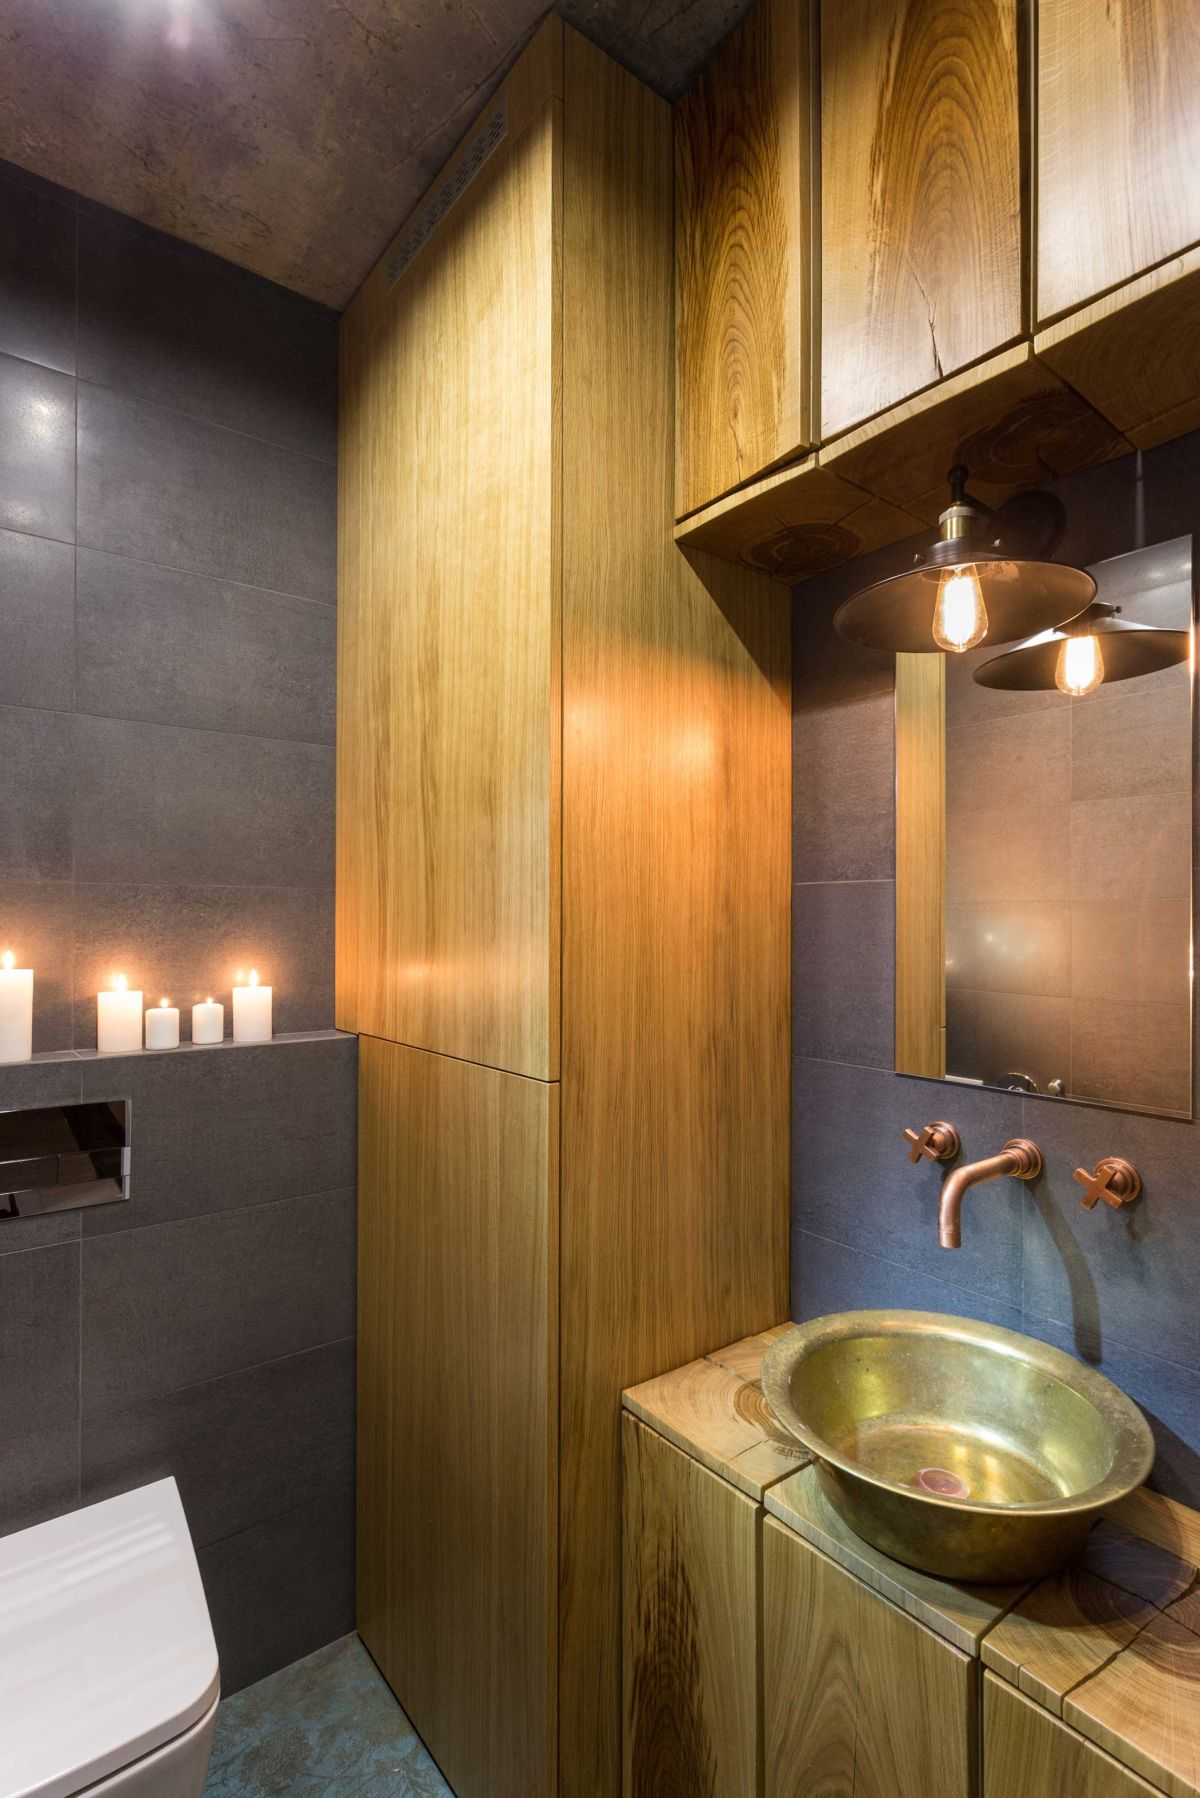 Remodeled Kiev apartment bathroom wood cabinetry